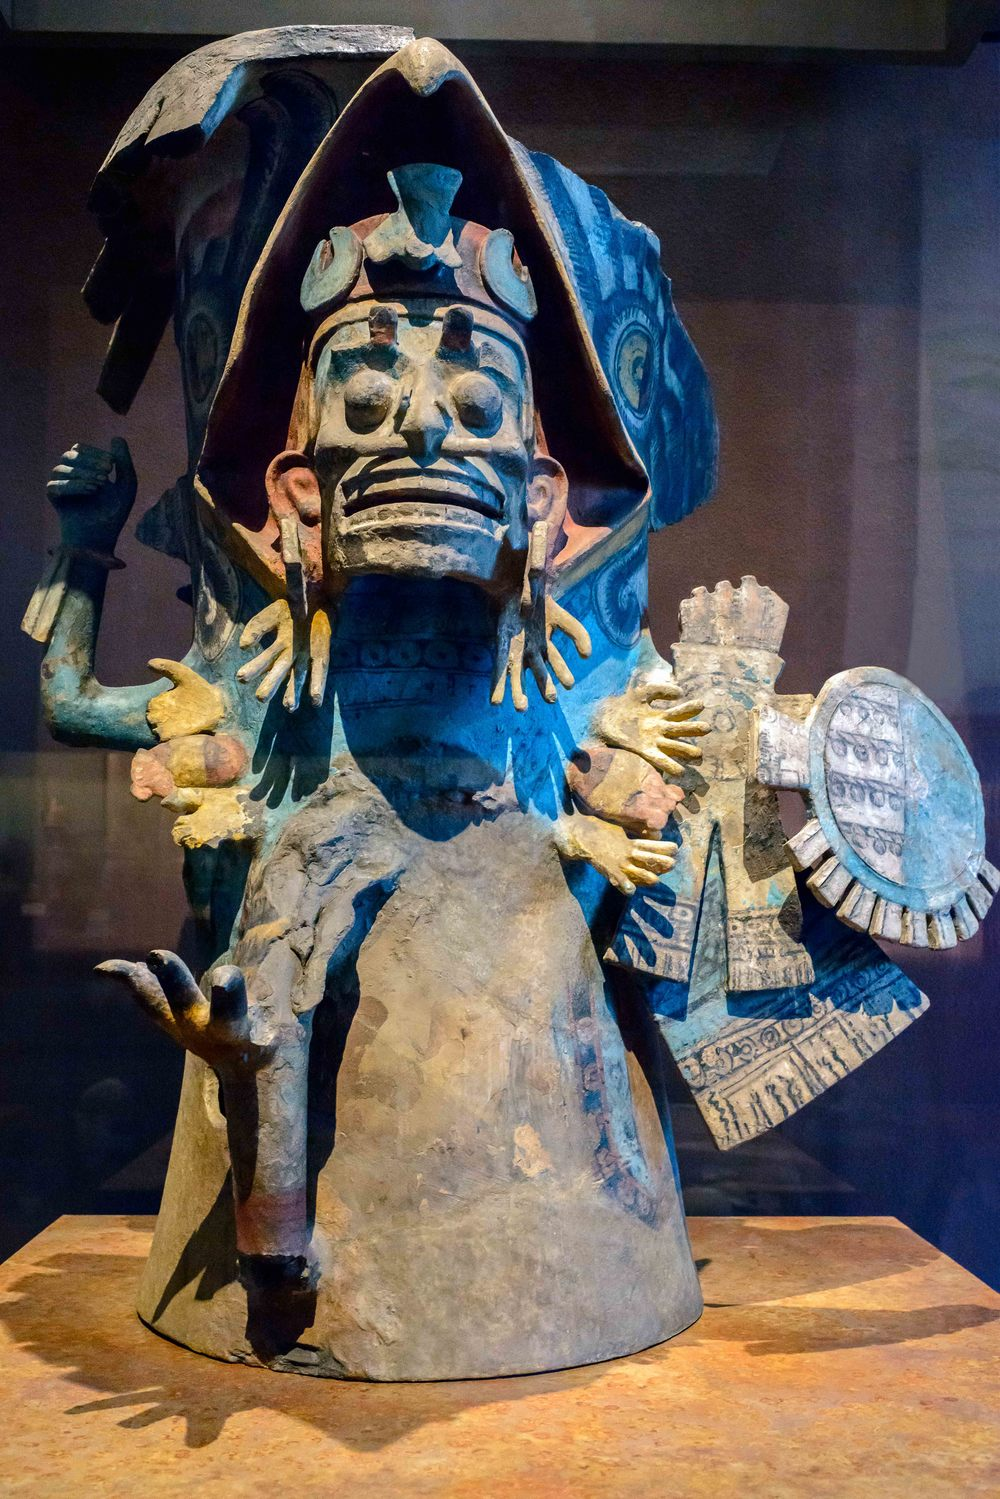 Brasero warrior. The picture painted and modeled in this splendid brazier is a dead eagle warrior, as shown by the stark face and wearing ornaments like ear-shaped hands and cut necklace hands and hearts as carrying deities death.